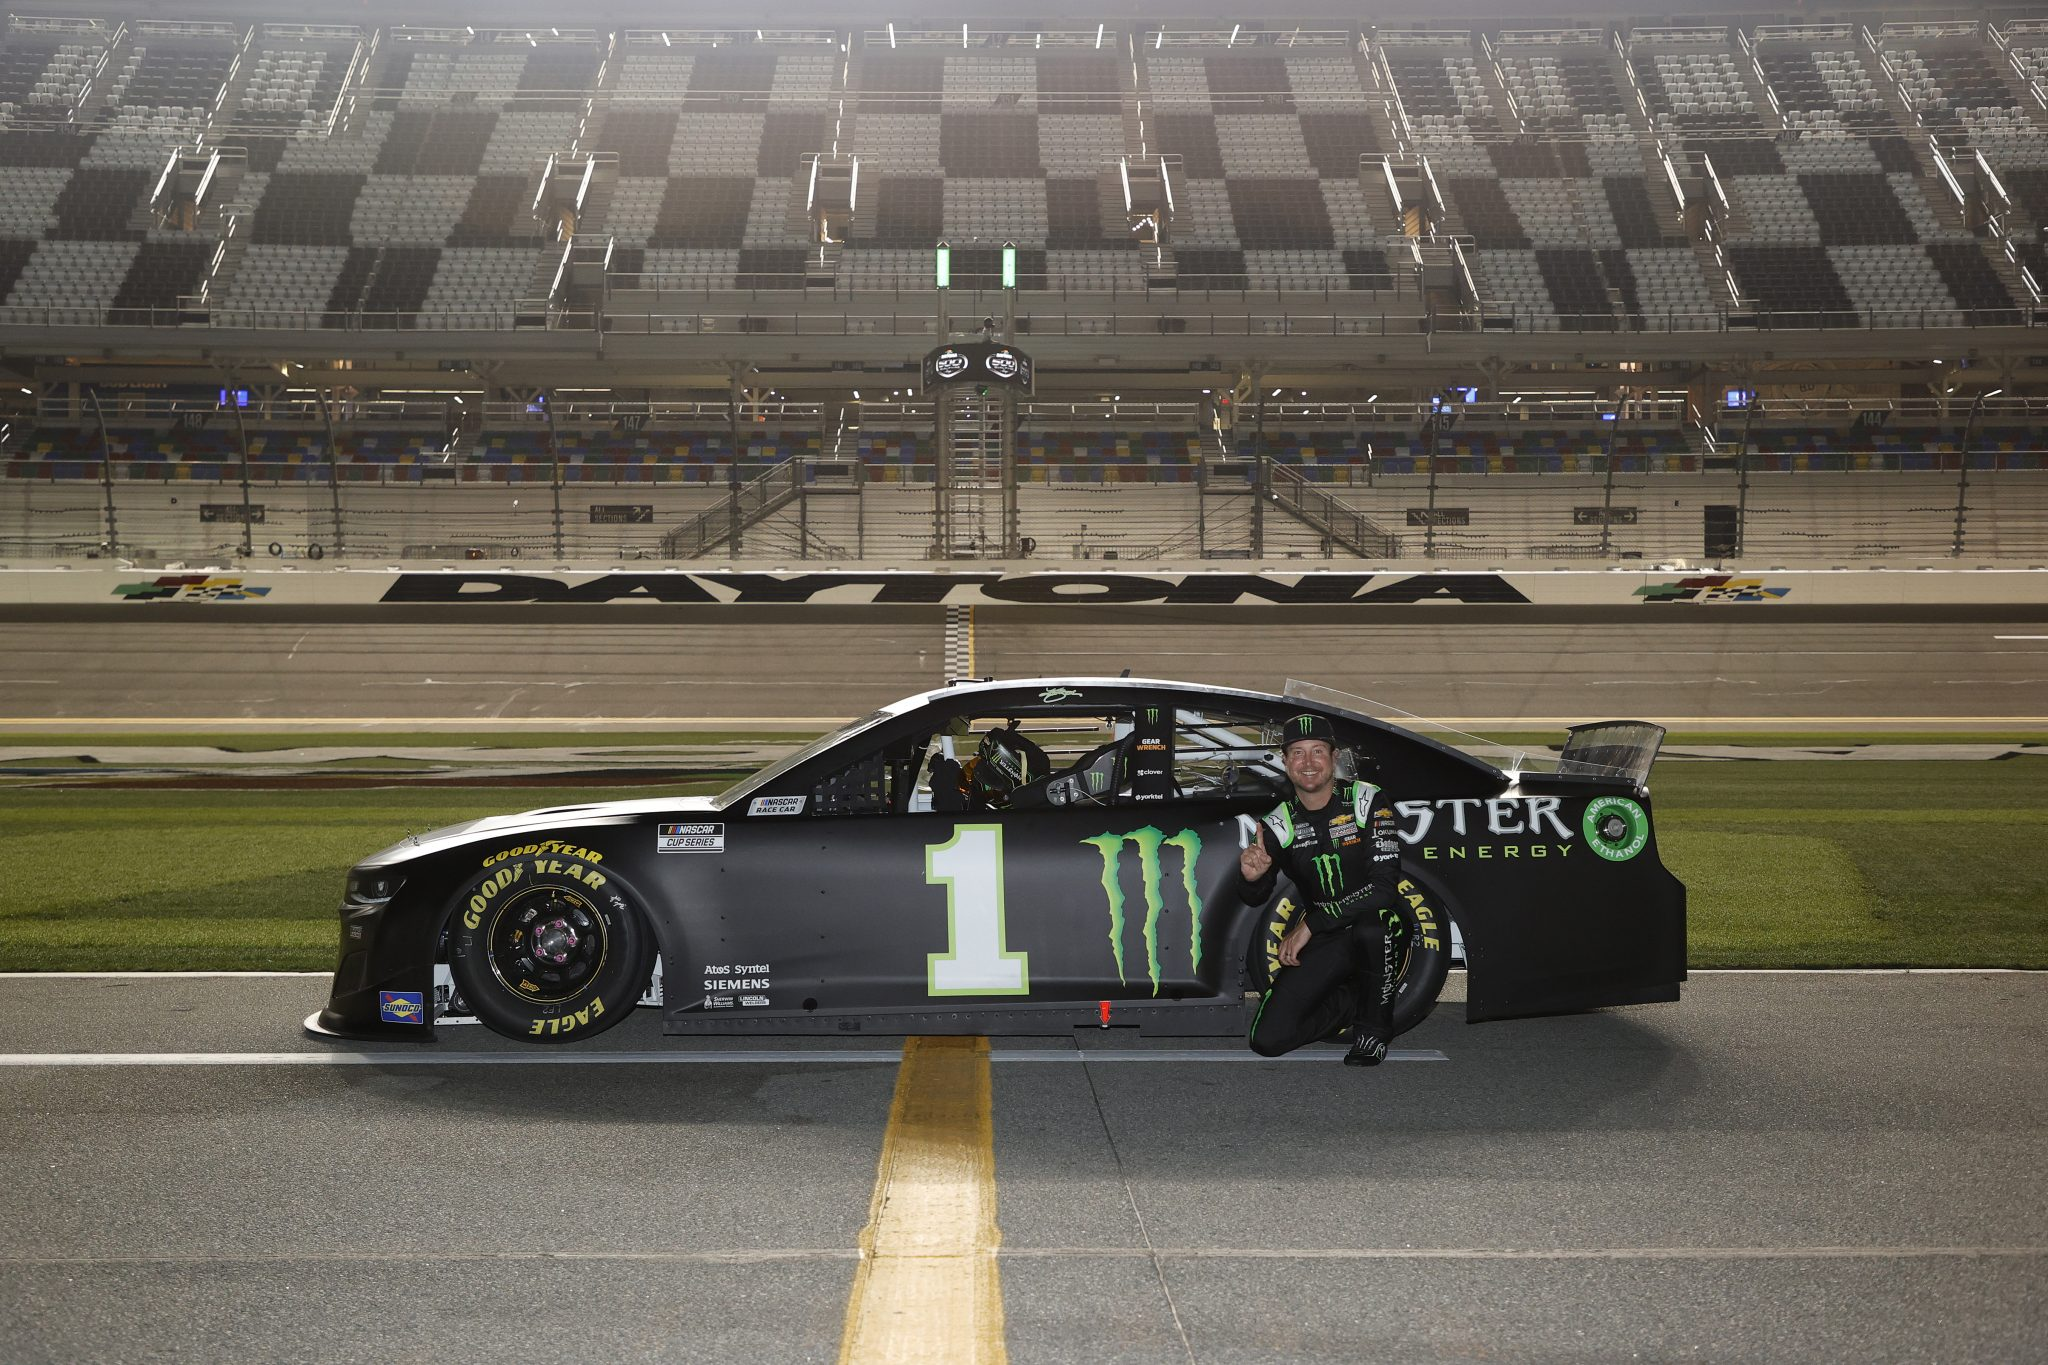 DAYTONA BEACH, FLORIDA - FEBRUARY 10: Kurt Busch, driver of the #1 Monster Energy Chevrolet, poses for photos during qualifying for the NASCAR Cup Series 63rd Annual Daytona 500 at Daytona International Speedway on February 10, 2021 in Daytona Beach, Florida. (Photo by Jared C. Tilton/Getty Images) | Getty Images